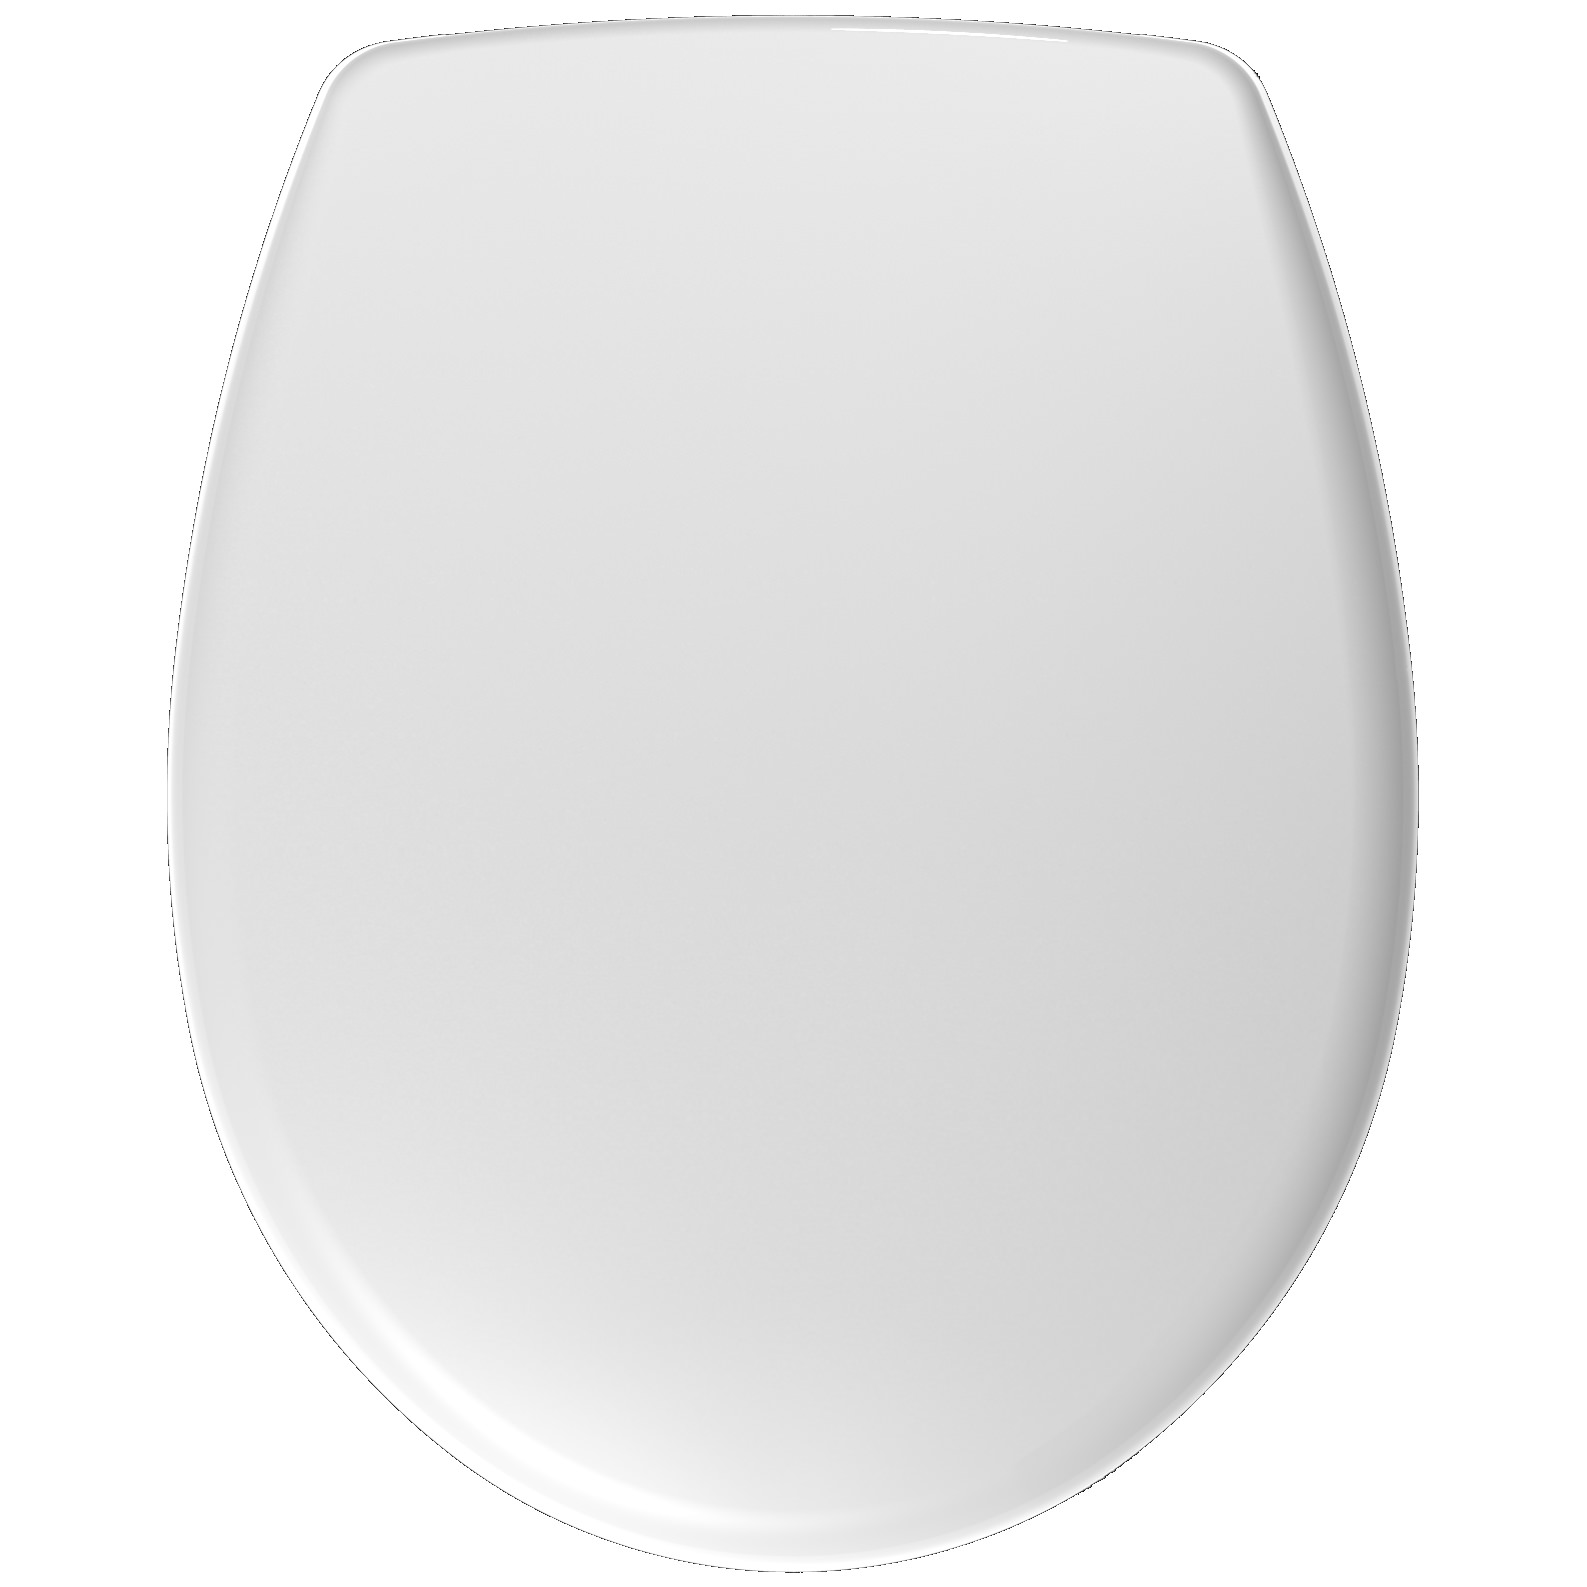 Wondrous Twyford Galerie Toilet Seat And Cover With Bottom Fix Stainless Steel Hinges Alphanode Cool Chair Designs And Ideas Alphanodeonline